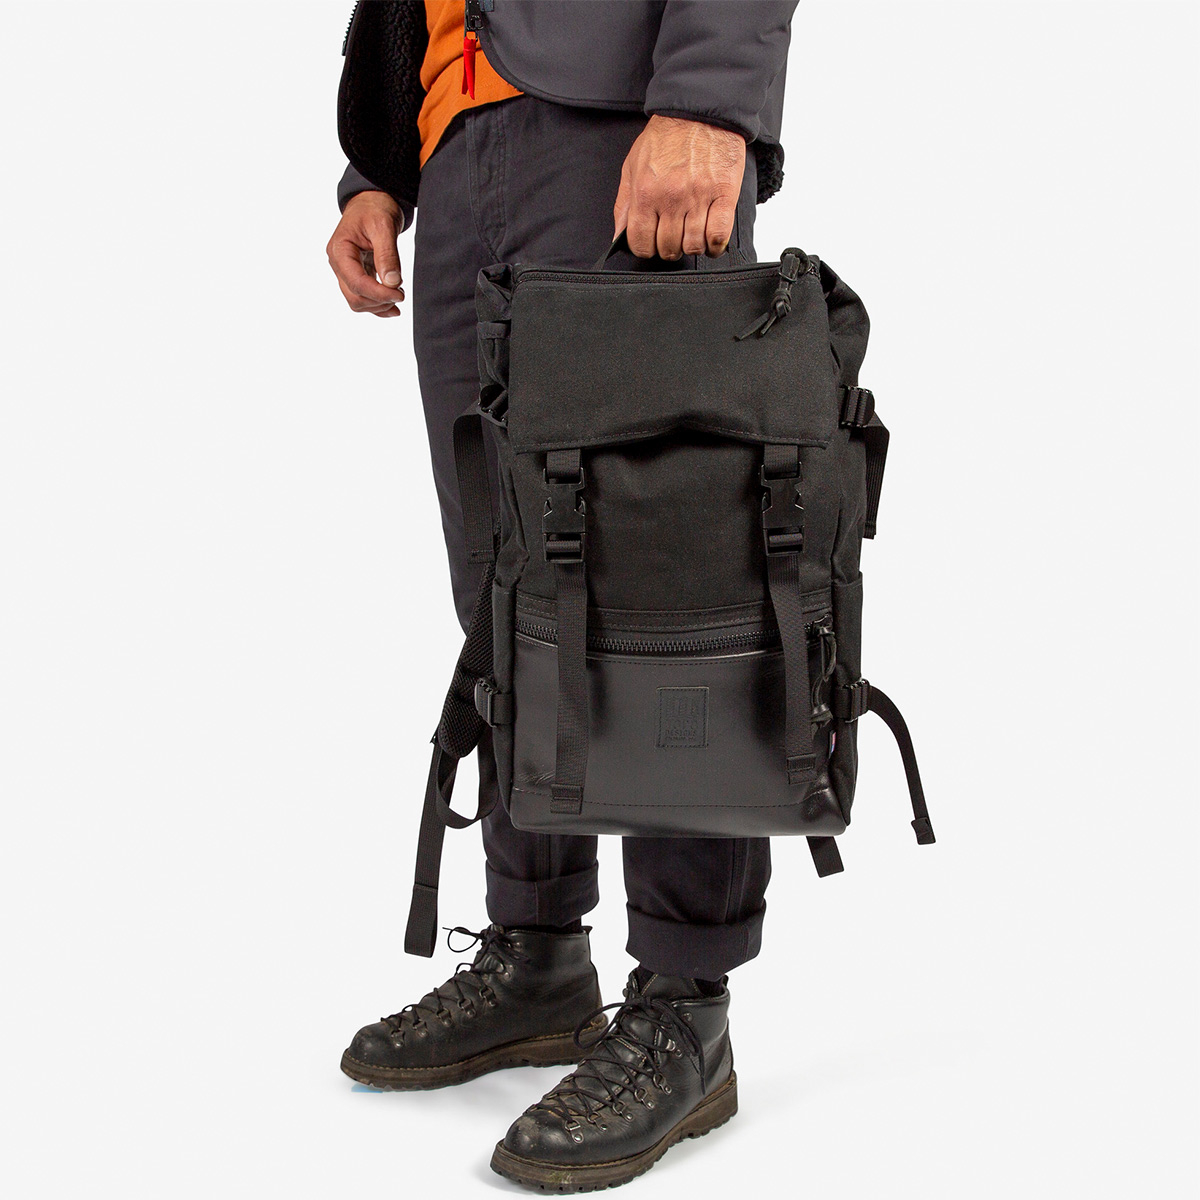 Topo Designs Rover Pack Ballistic Black Leather, strong backpack with great functionality